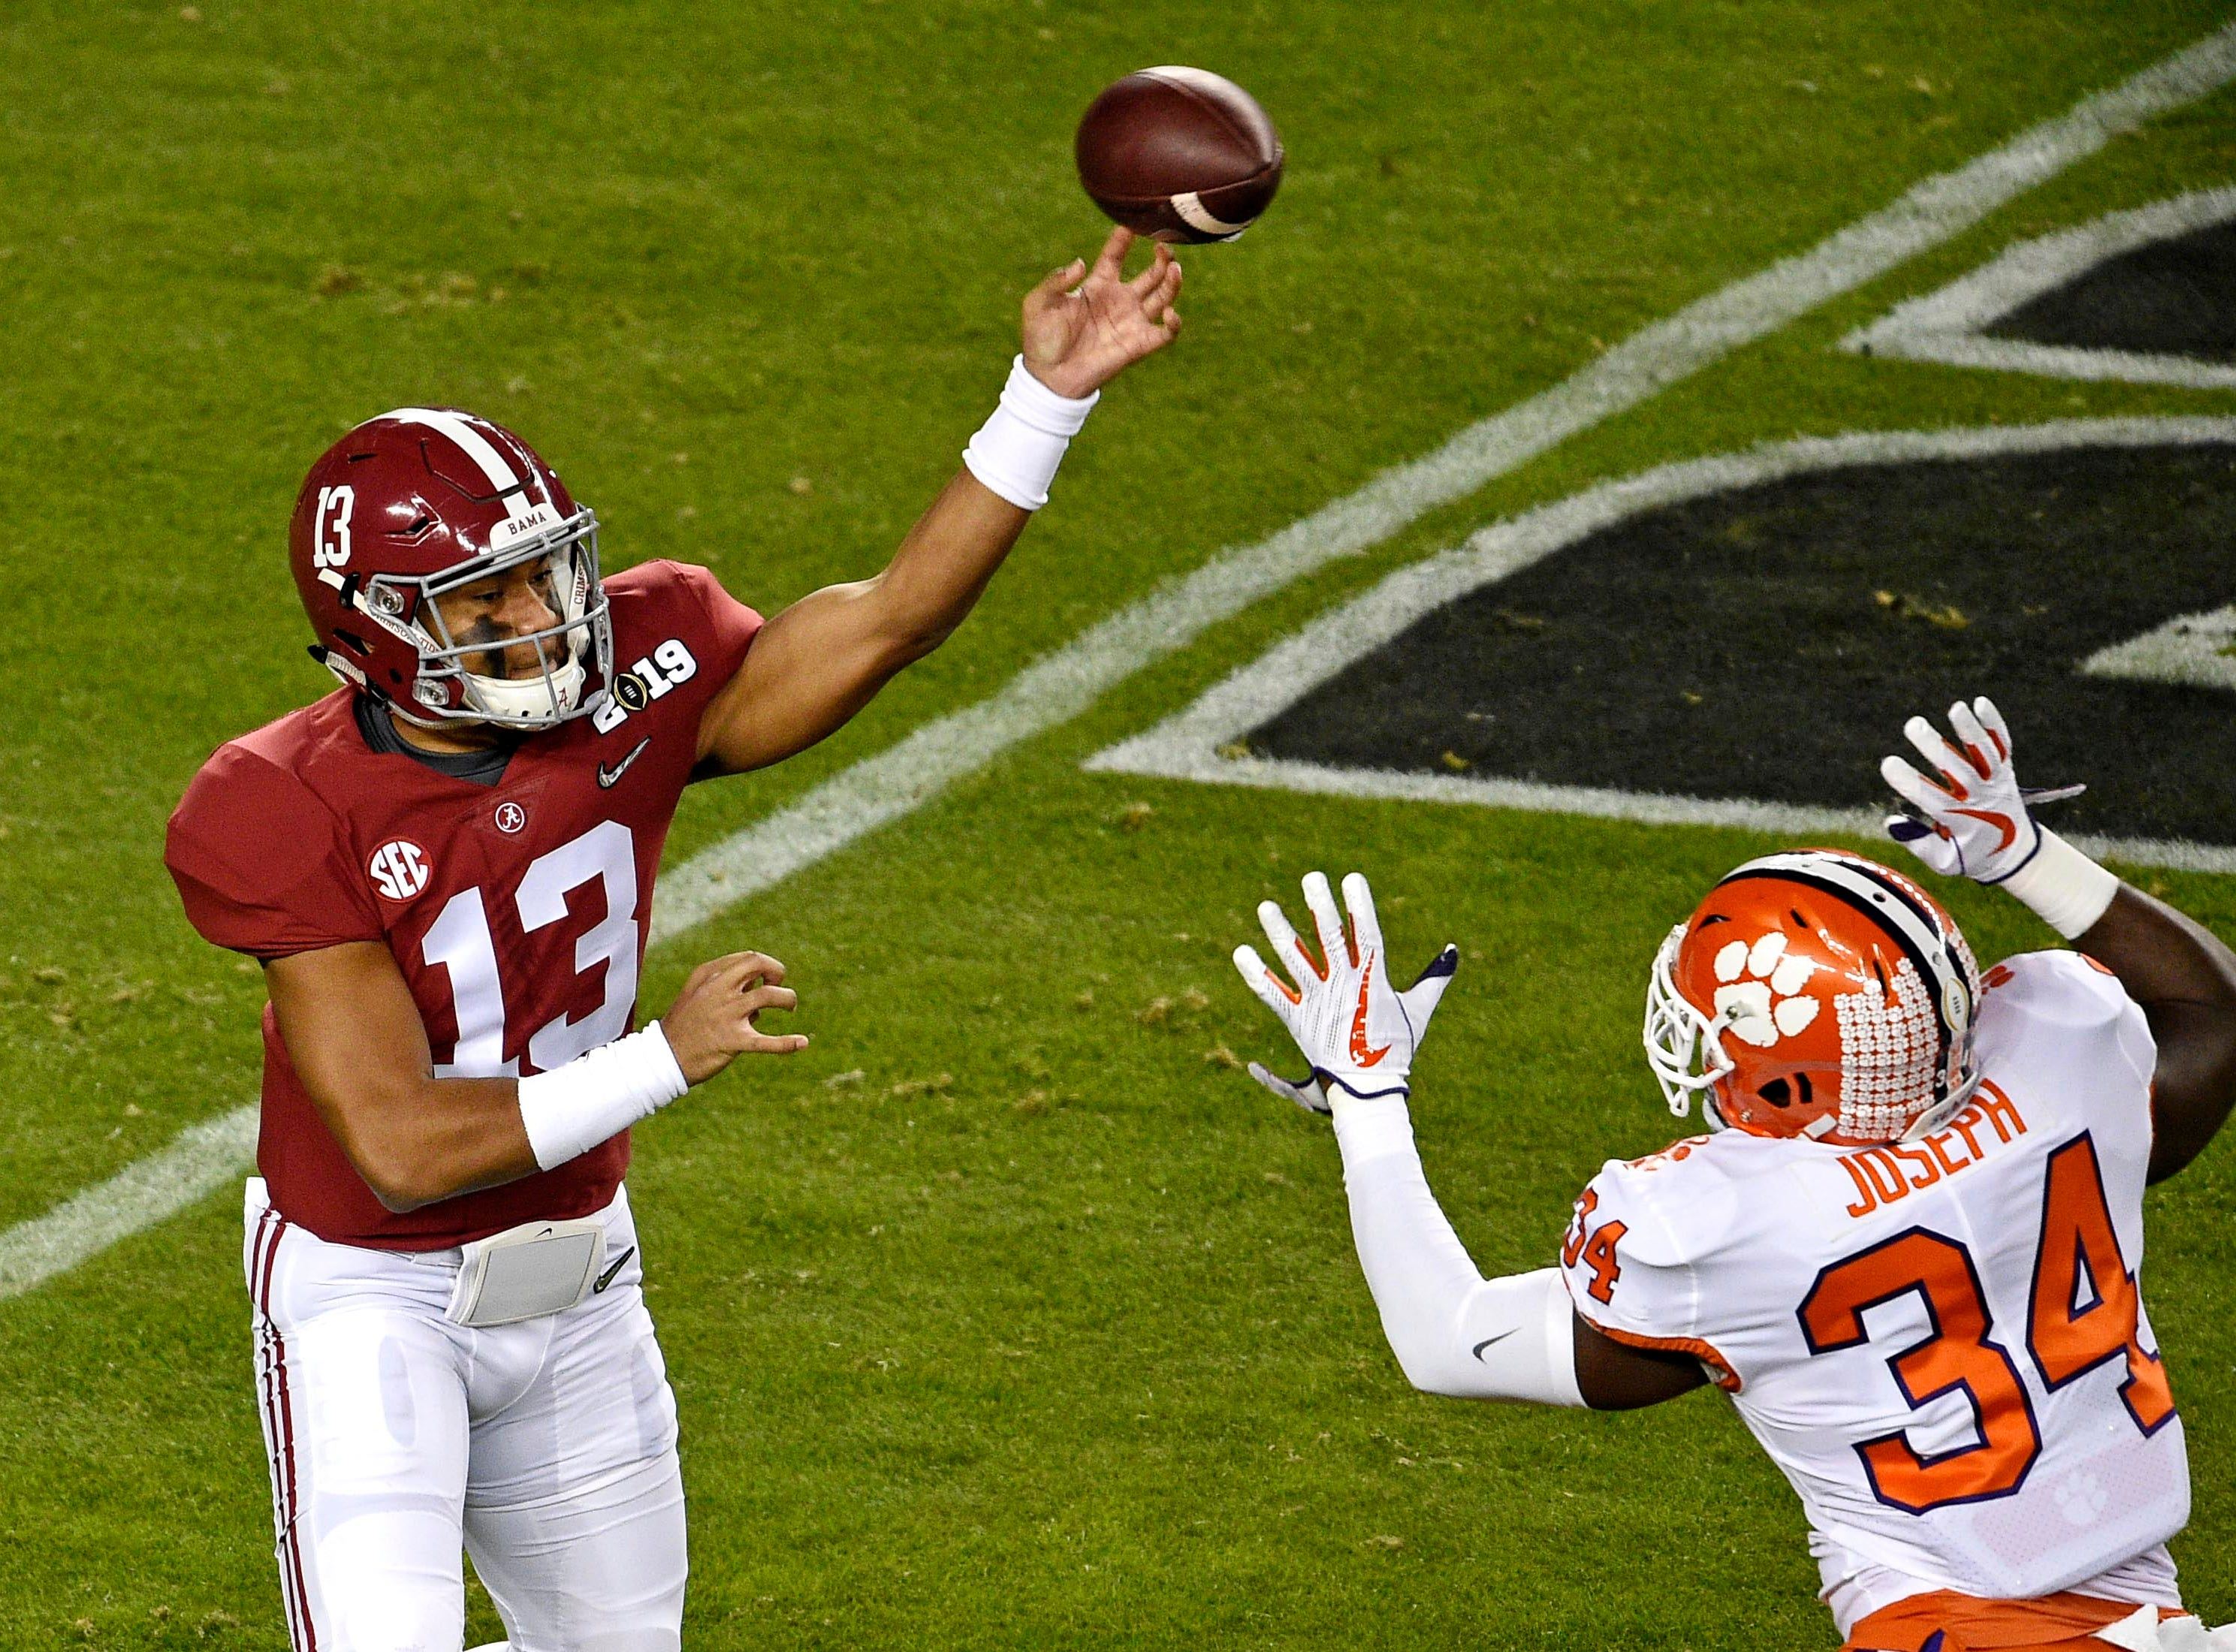 Jan 7, 2019; Santa Clara, CA, USA; Alabama Crimson Tide quarterback Tua Tagovailoa (13) throws a pass during the first quarter against the Clemson Tigers during the 2019 College Football Playoff Championship game at Levi's Stadium. Mandatory Credit: Kelvin Kuo-USA TODAY Sports